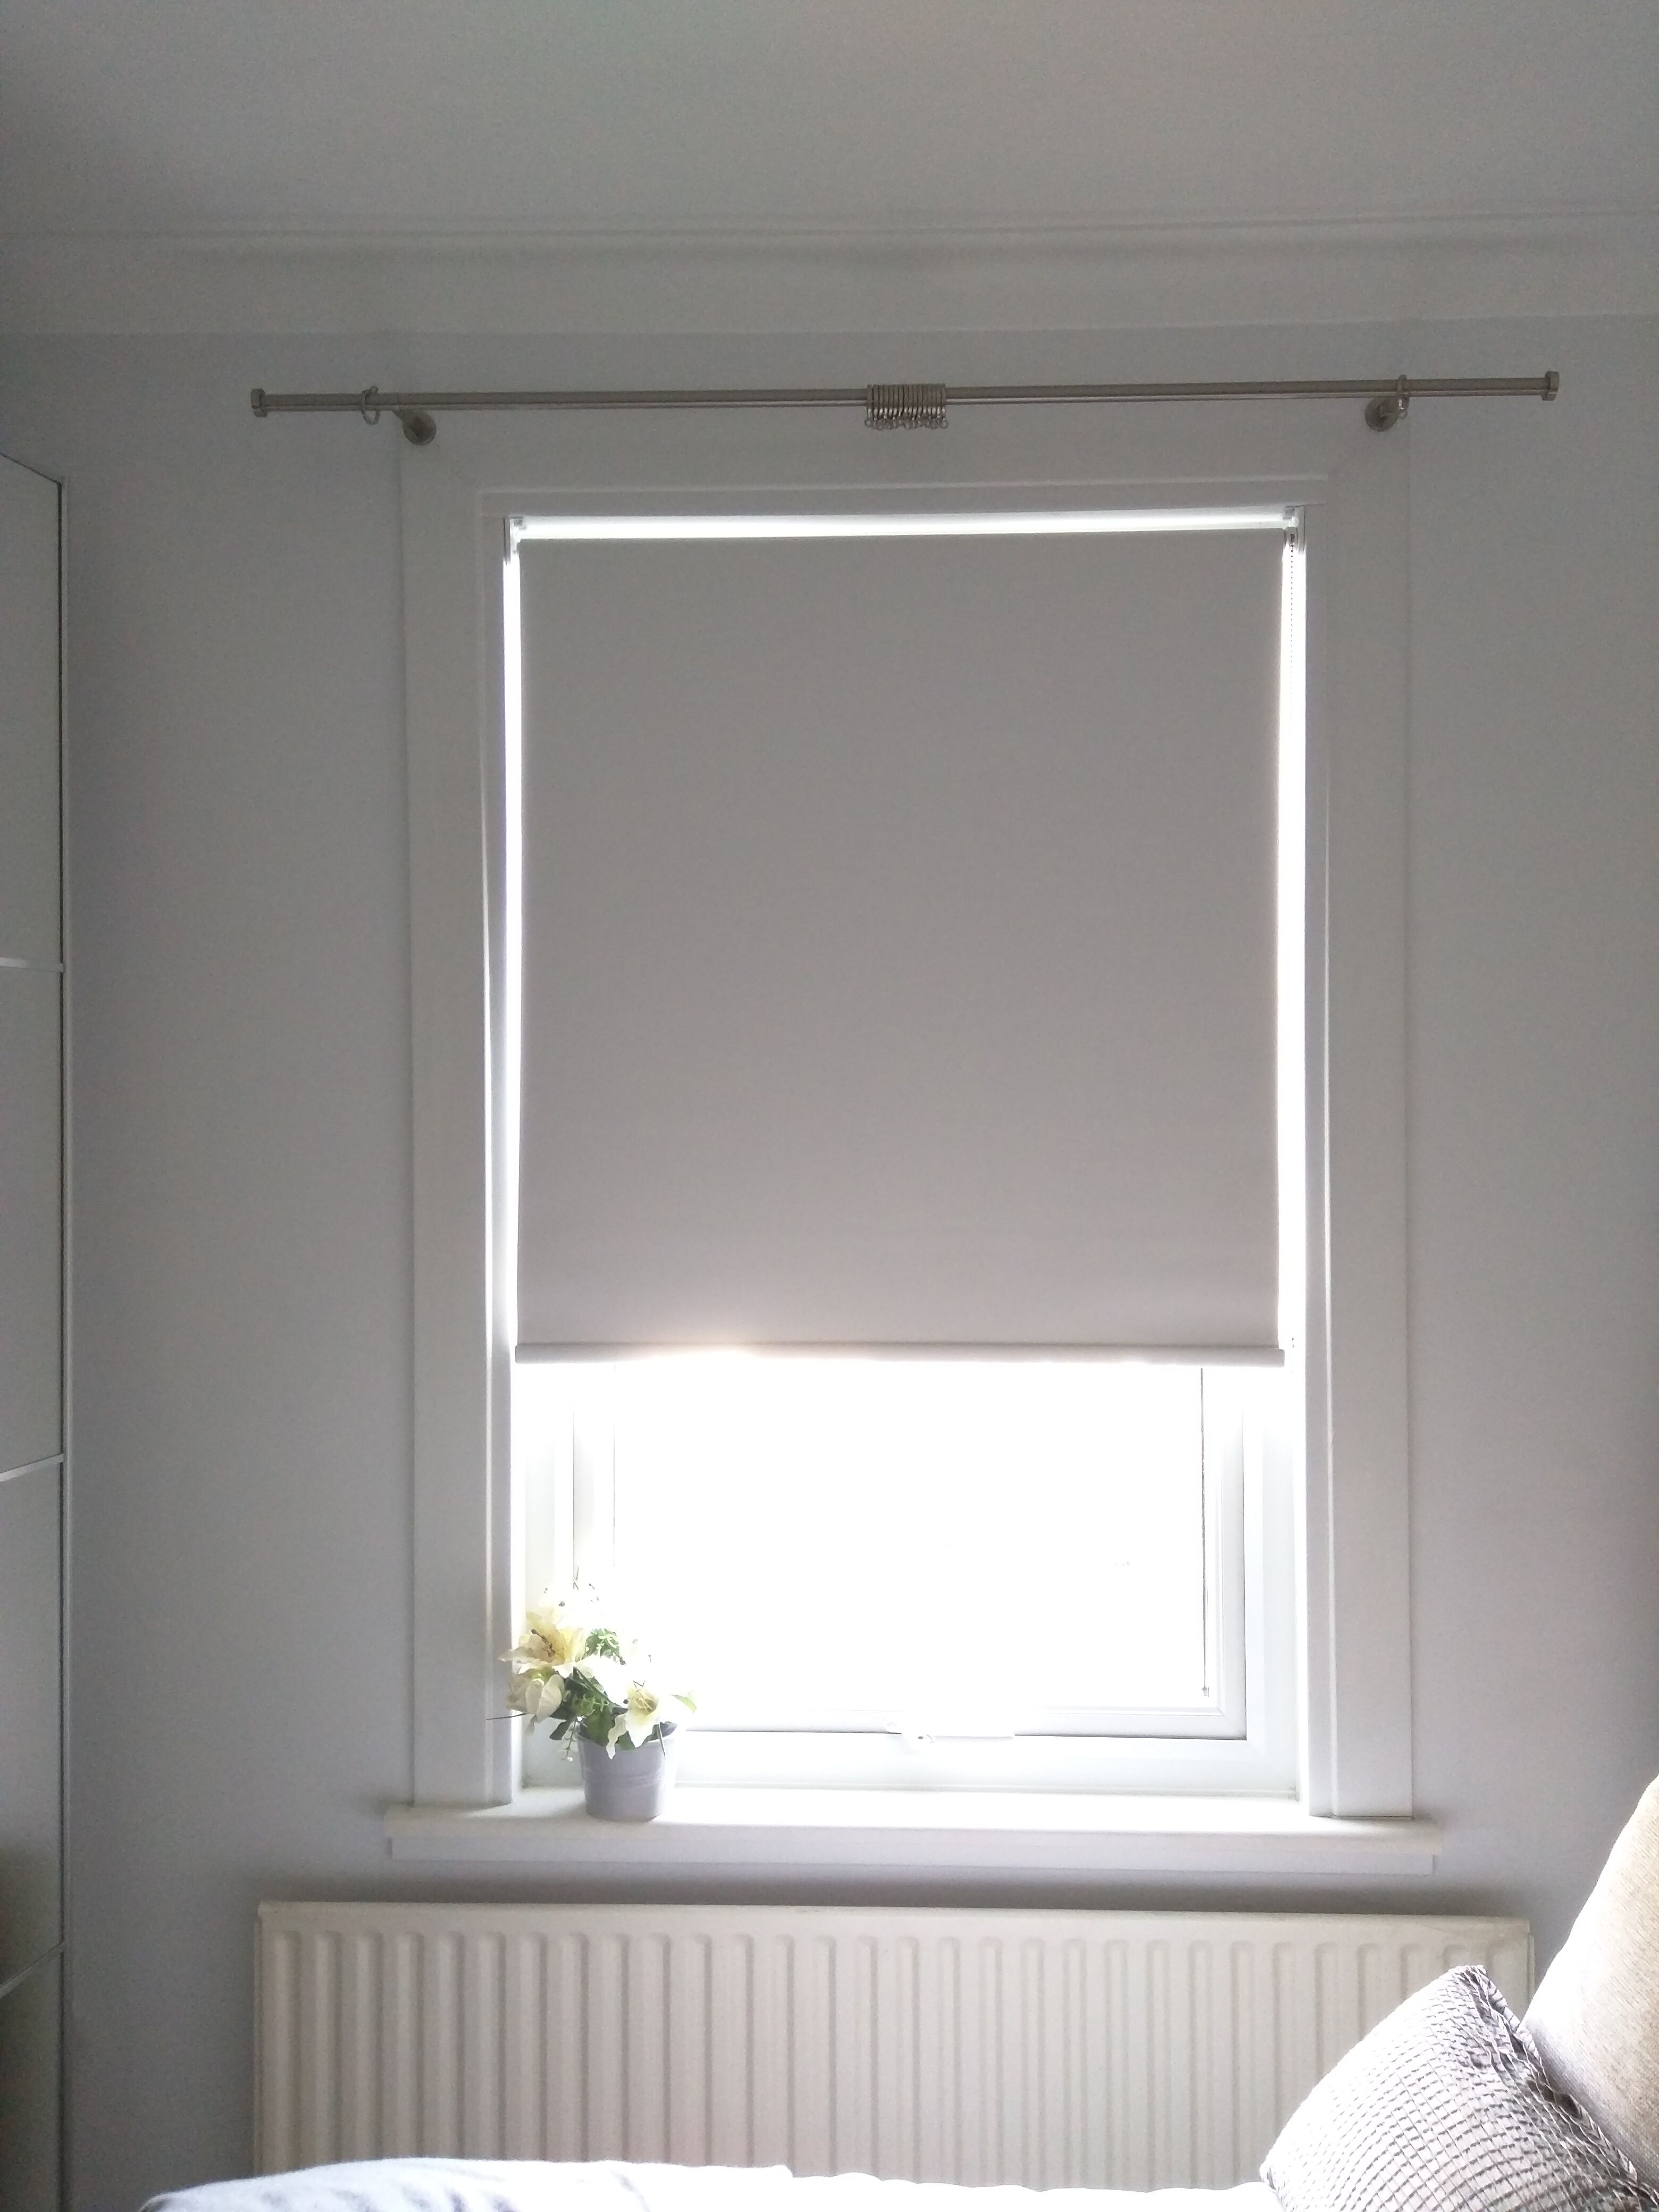 Blackout Roller Blind In Polar White Fitted To Bedroom Window In Fulham |  Modern Blinds |